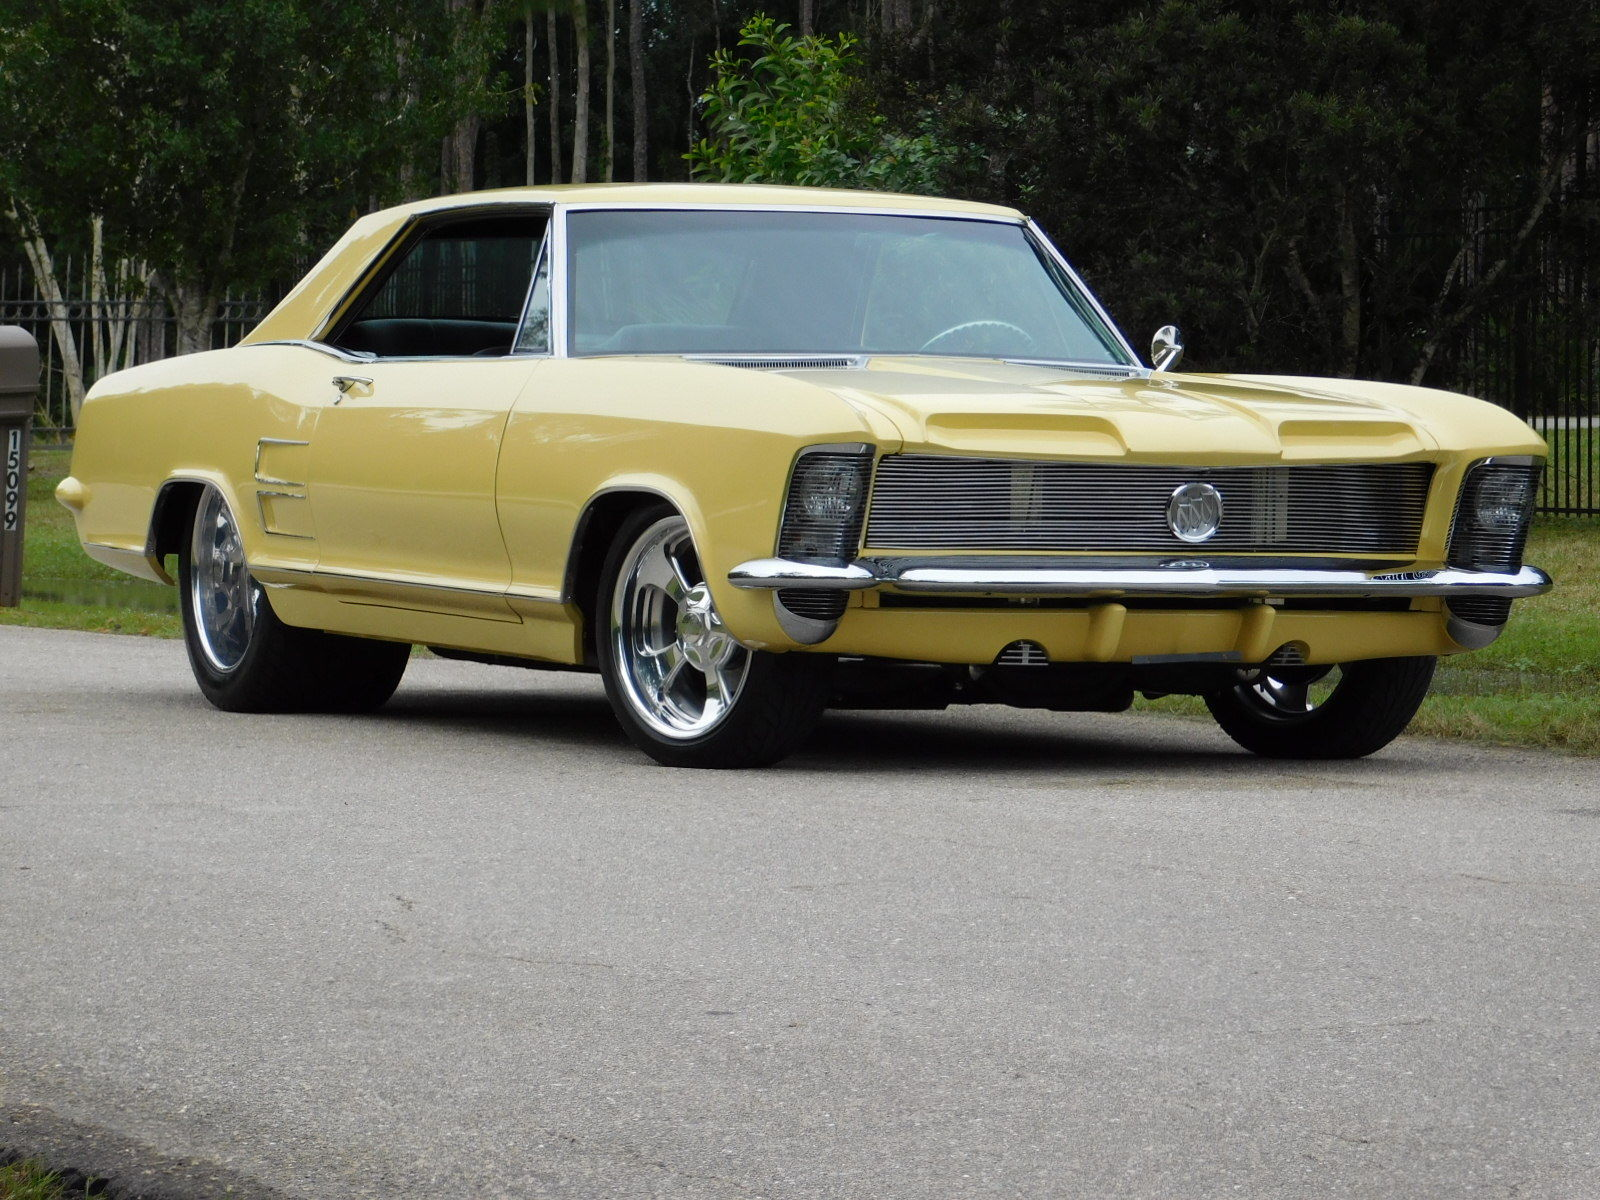 This 1964 Buick Riviera Is Unique In A Bunch Of Ways But The Engine Is A Topper